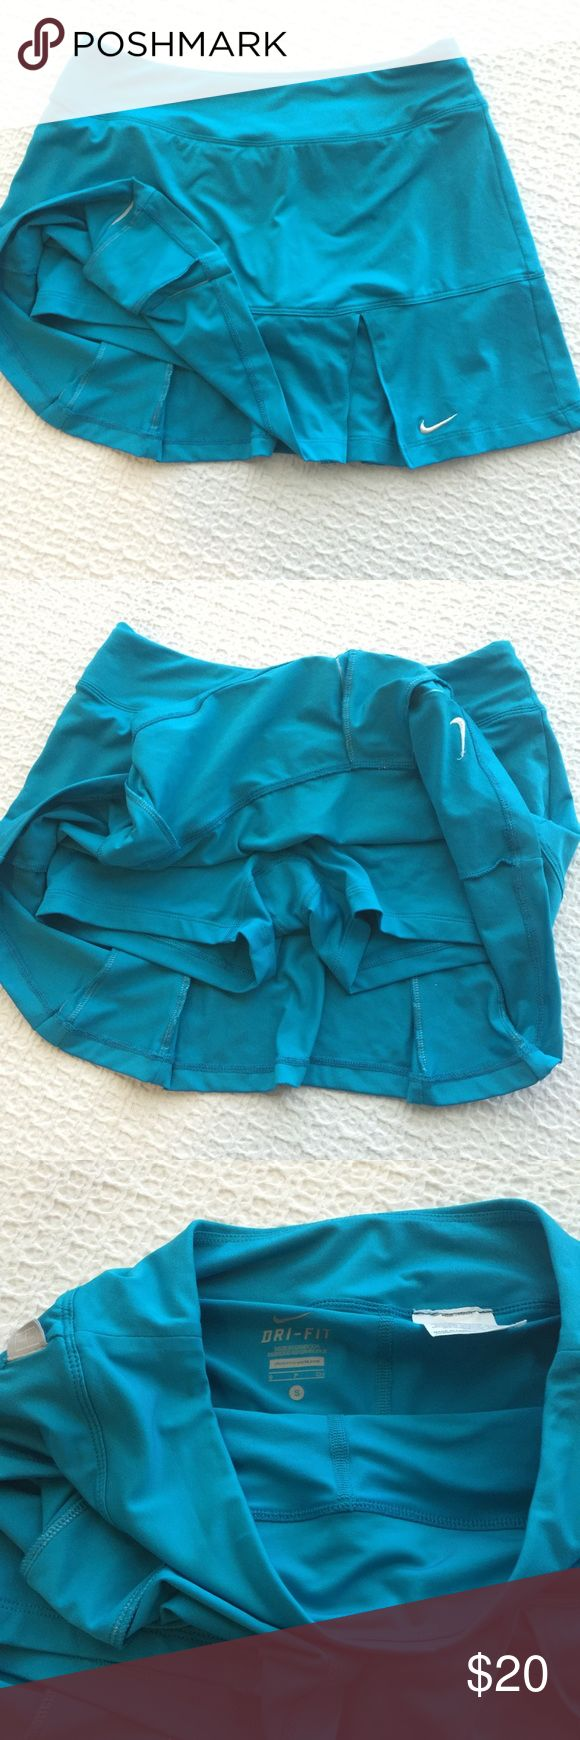 Nike Pleated Tennis Skirt with Shorts Worn once, in excellent condition!   { FYI, I'm not interested in trading at the moment, trying to make space in my closet :) Thanks! } Nike Skirts